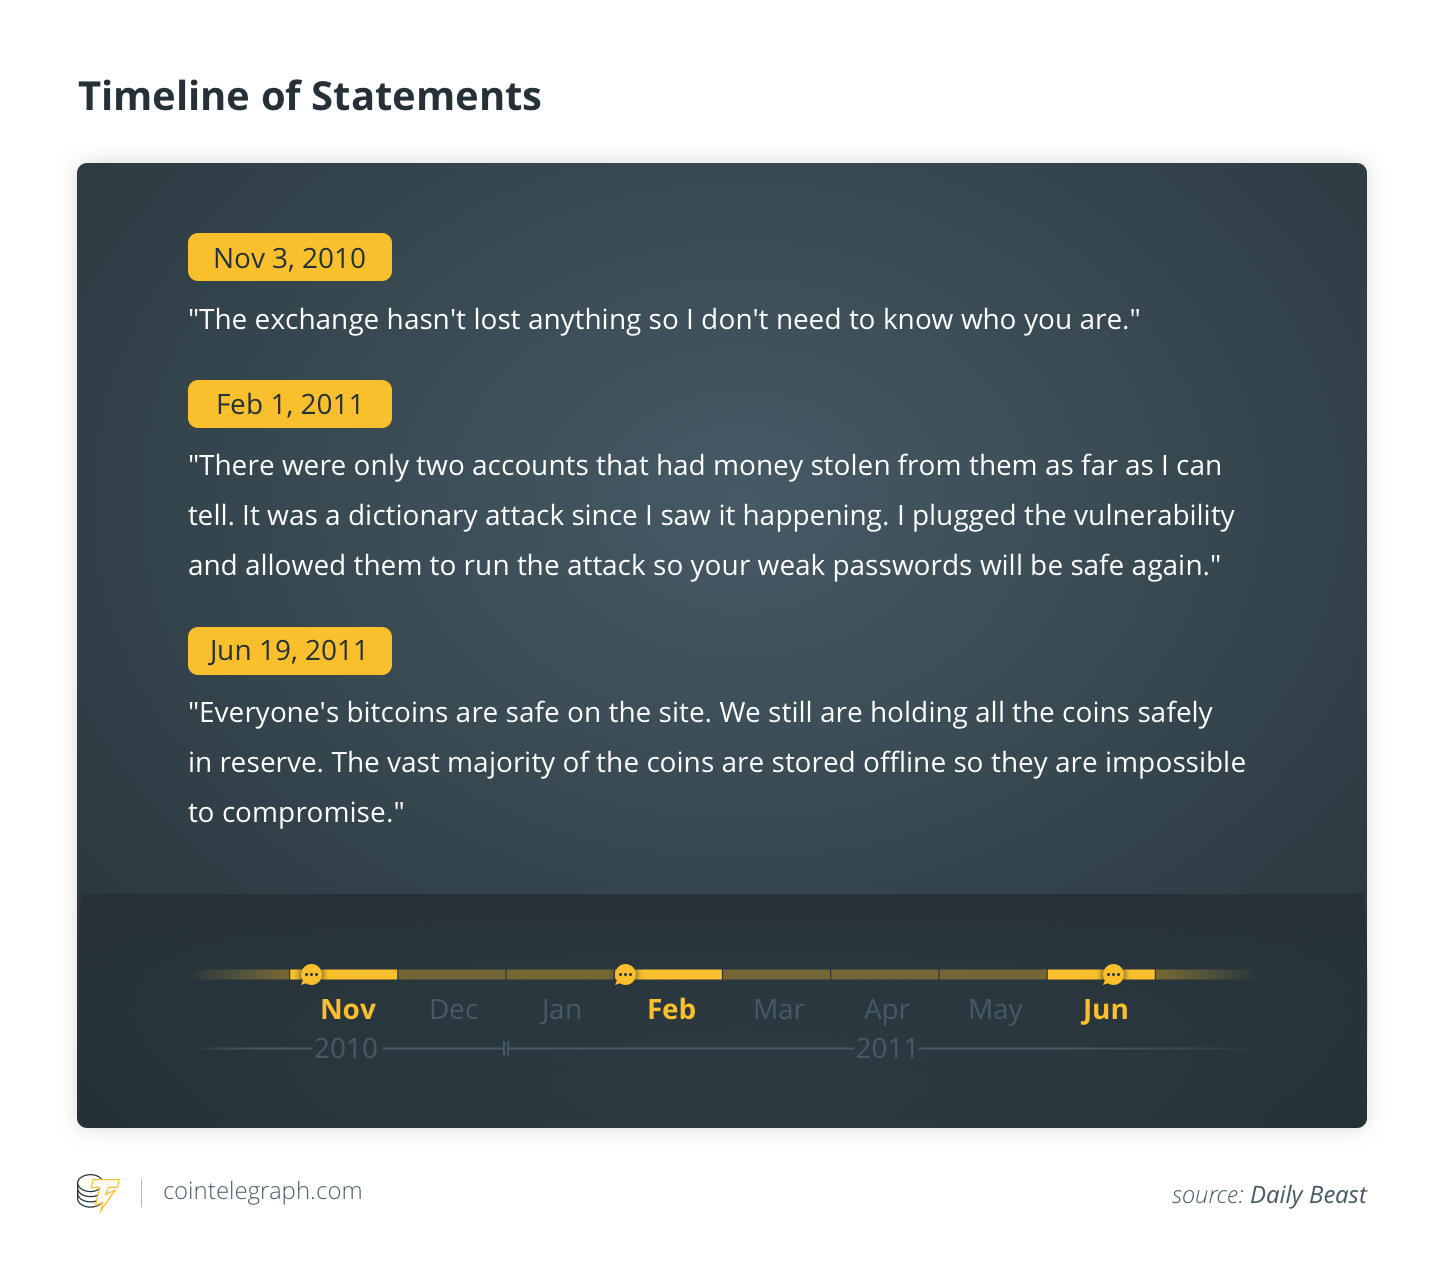 Timeline of Statements